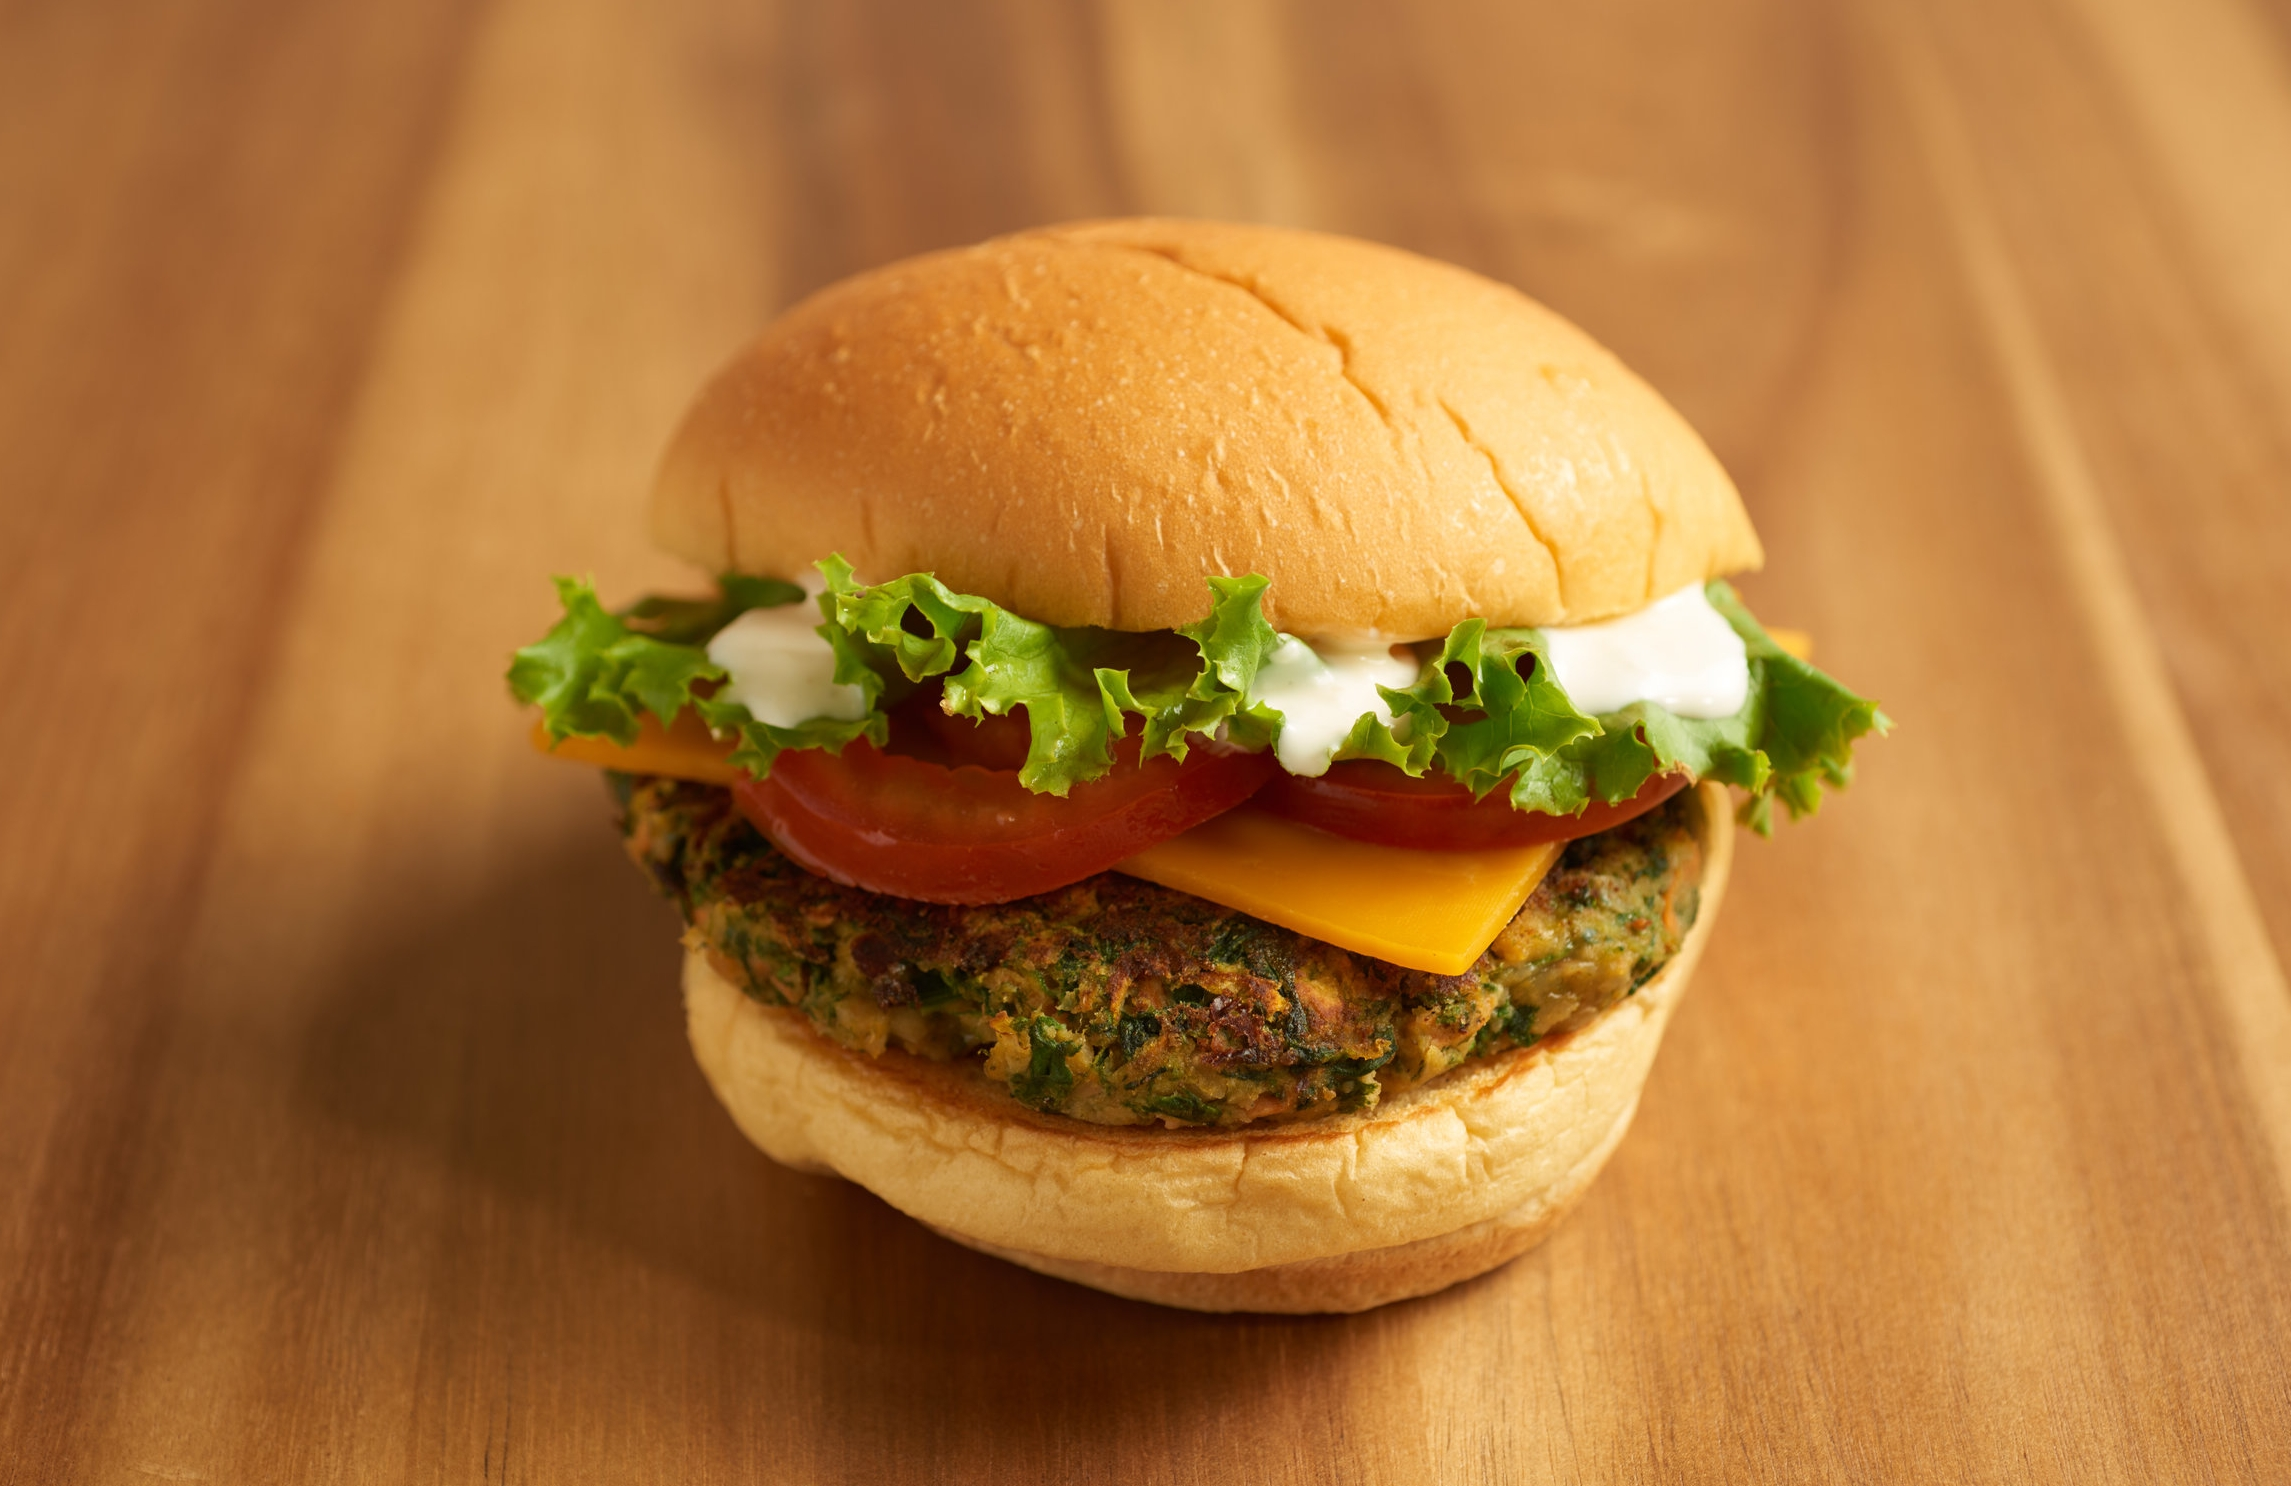 Turkey_Burger_WUBurger1676.jpg